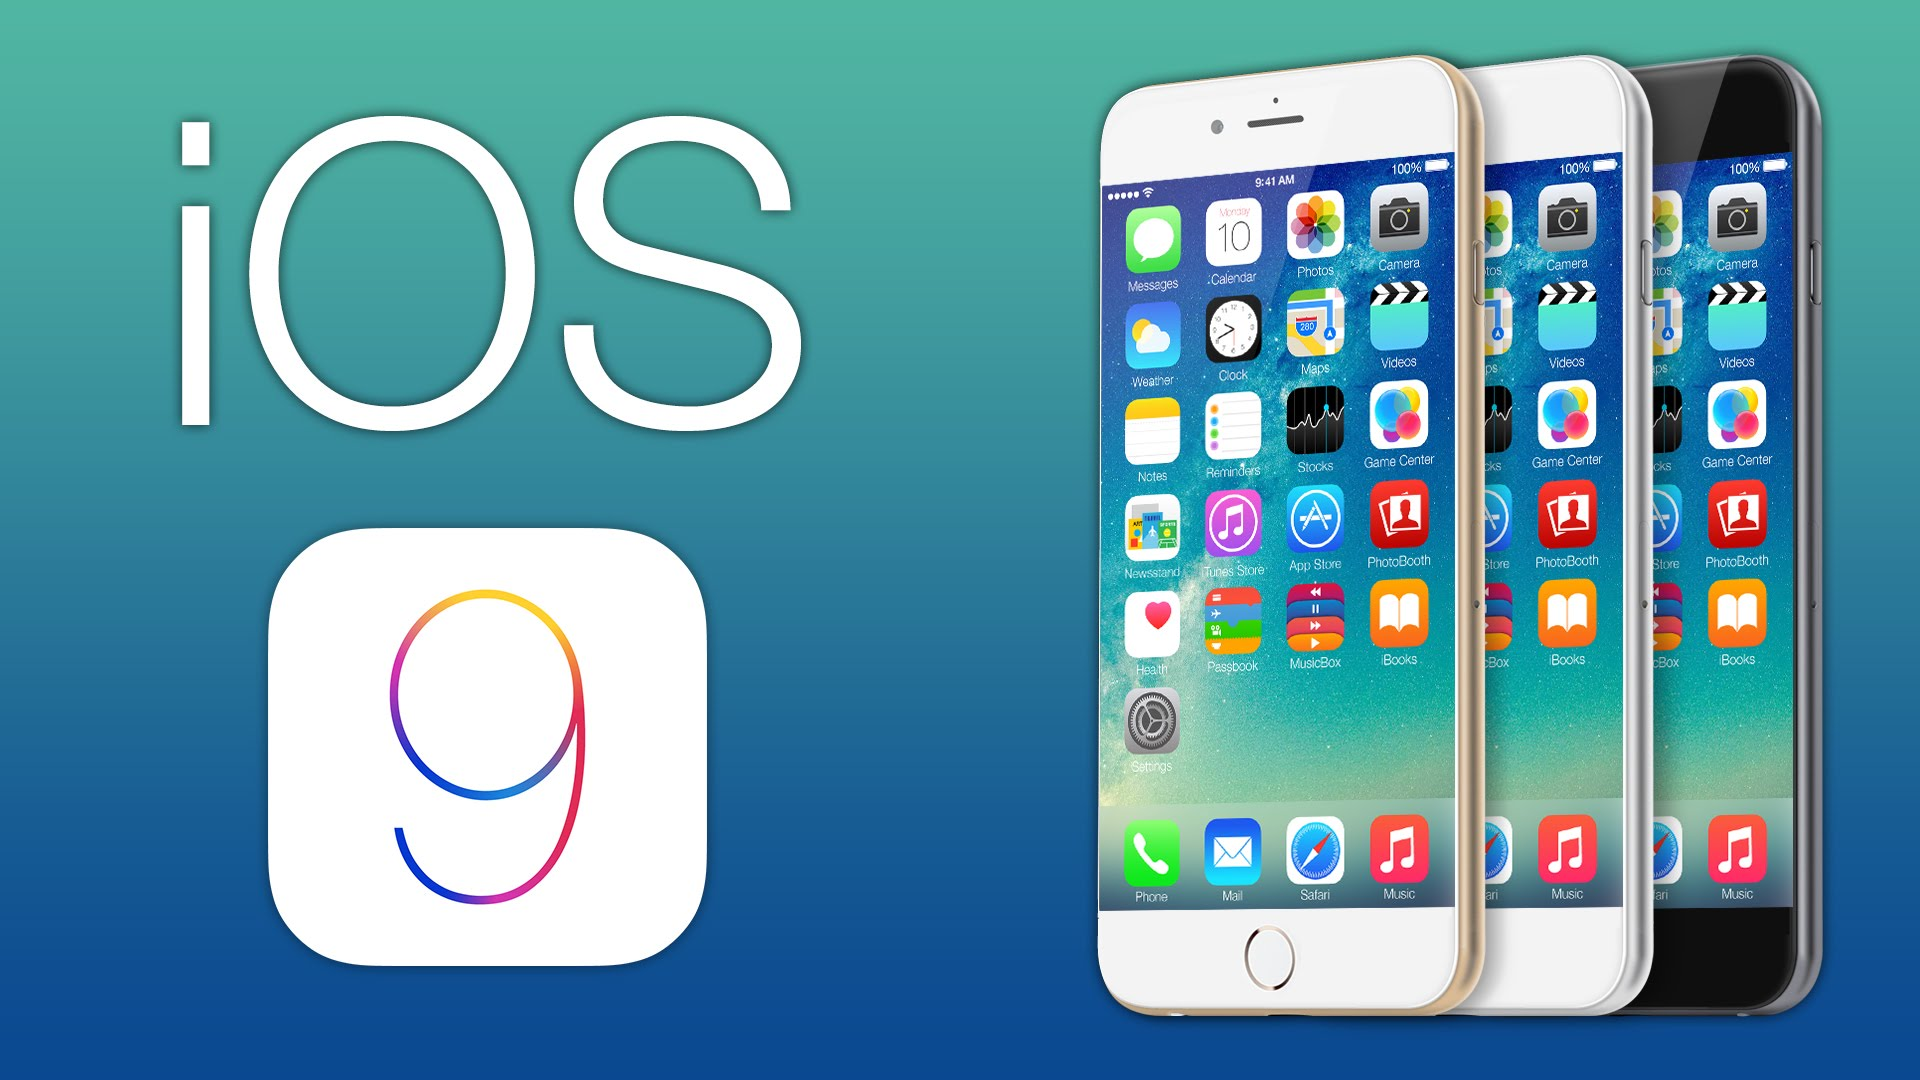 the-fourth-beta-build-of-ios-9-is-now-available-for-download-487463-2